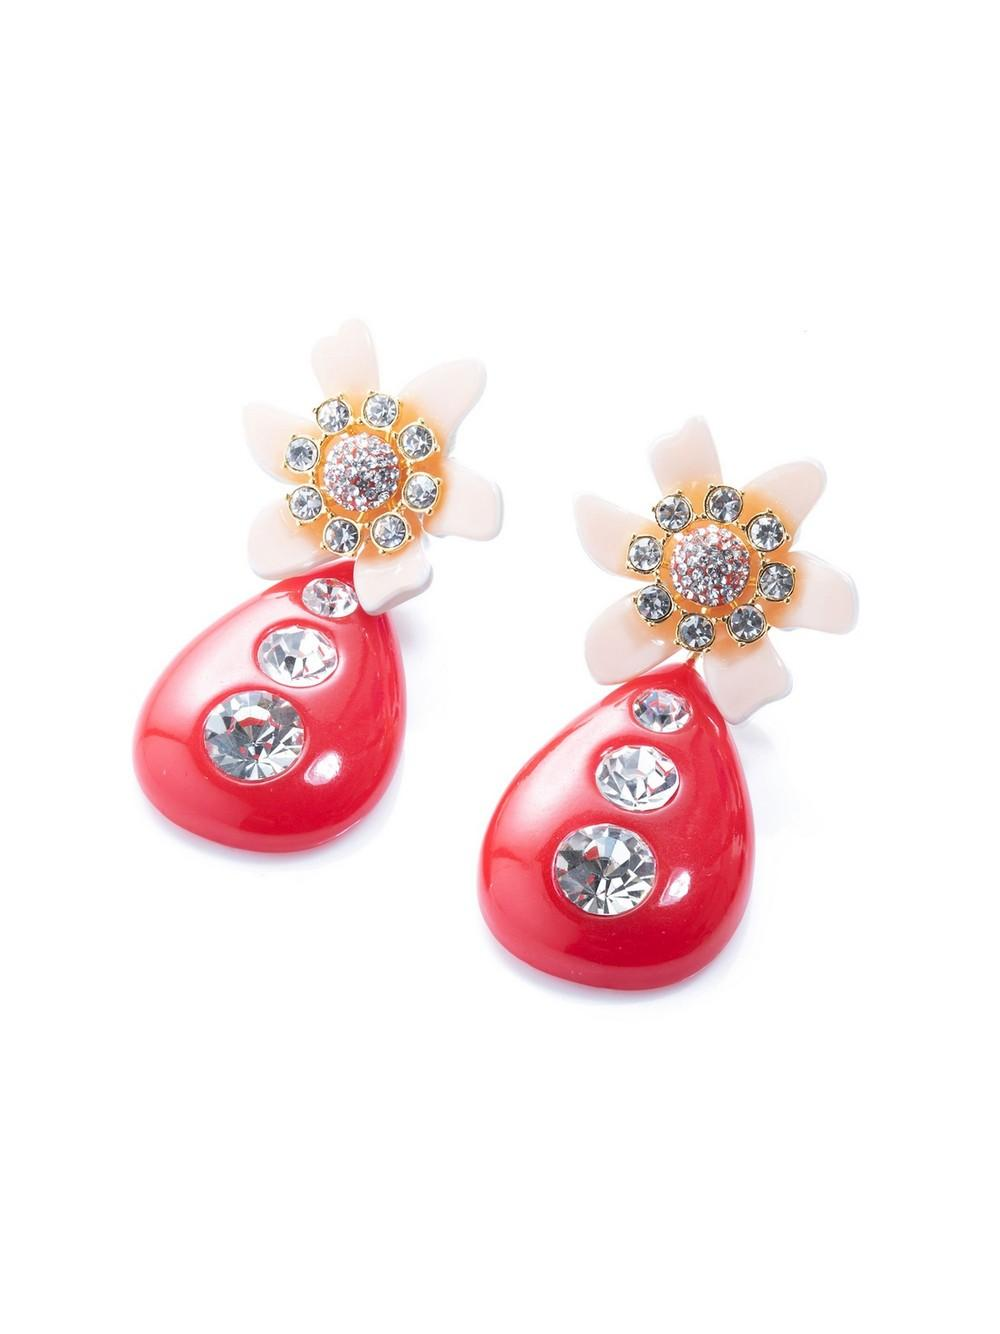 Flower Bulb Earrings